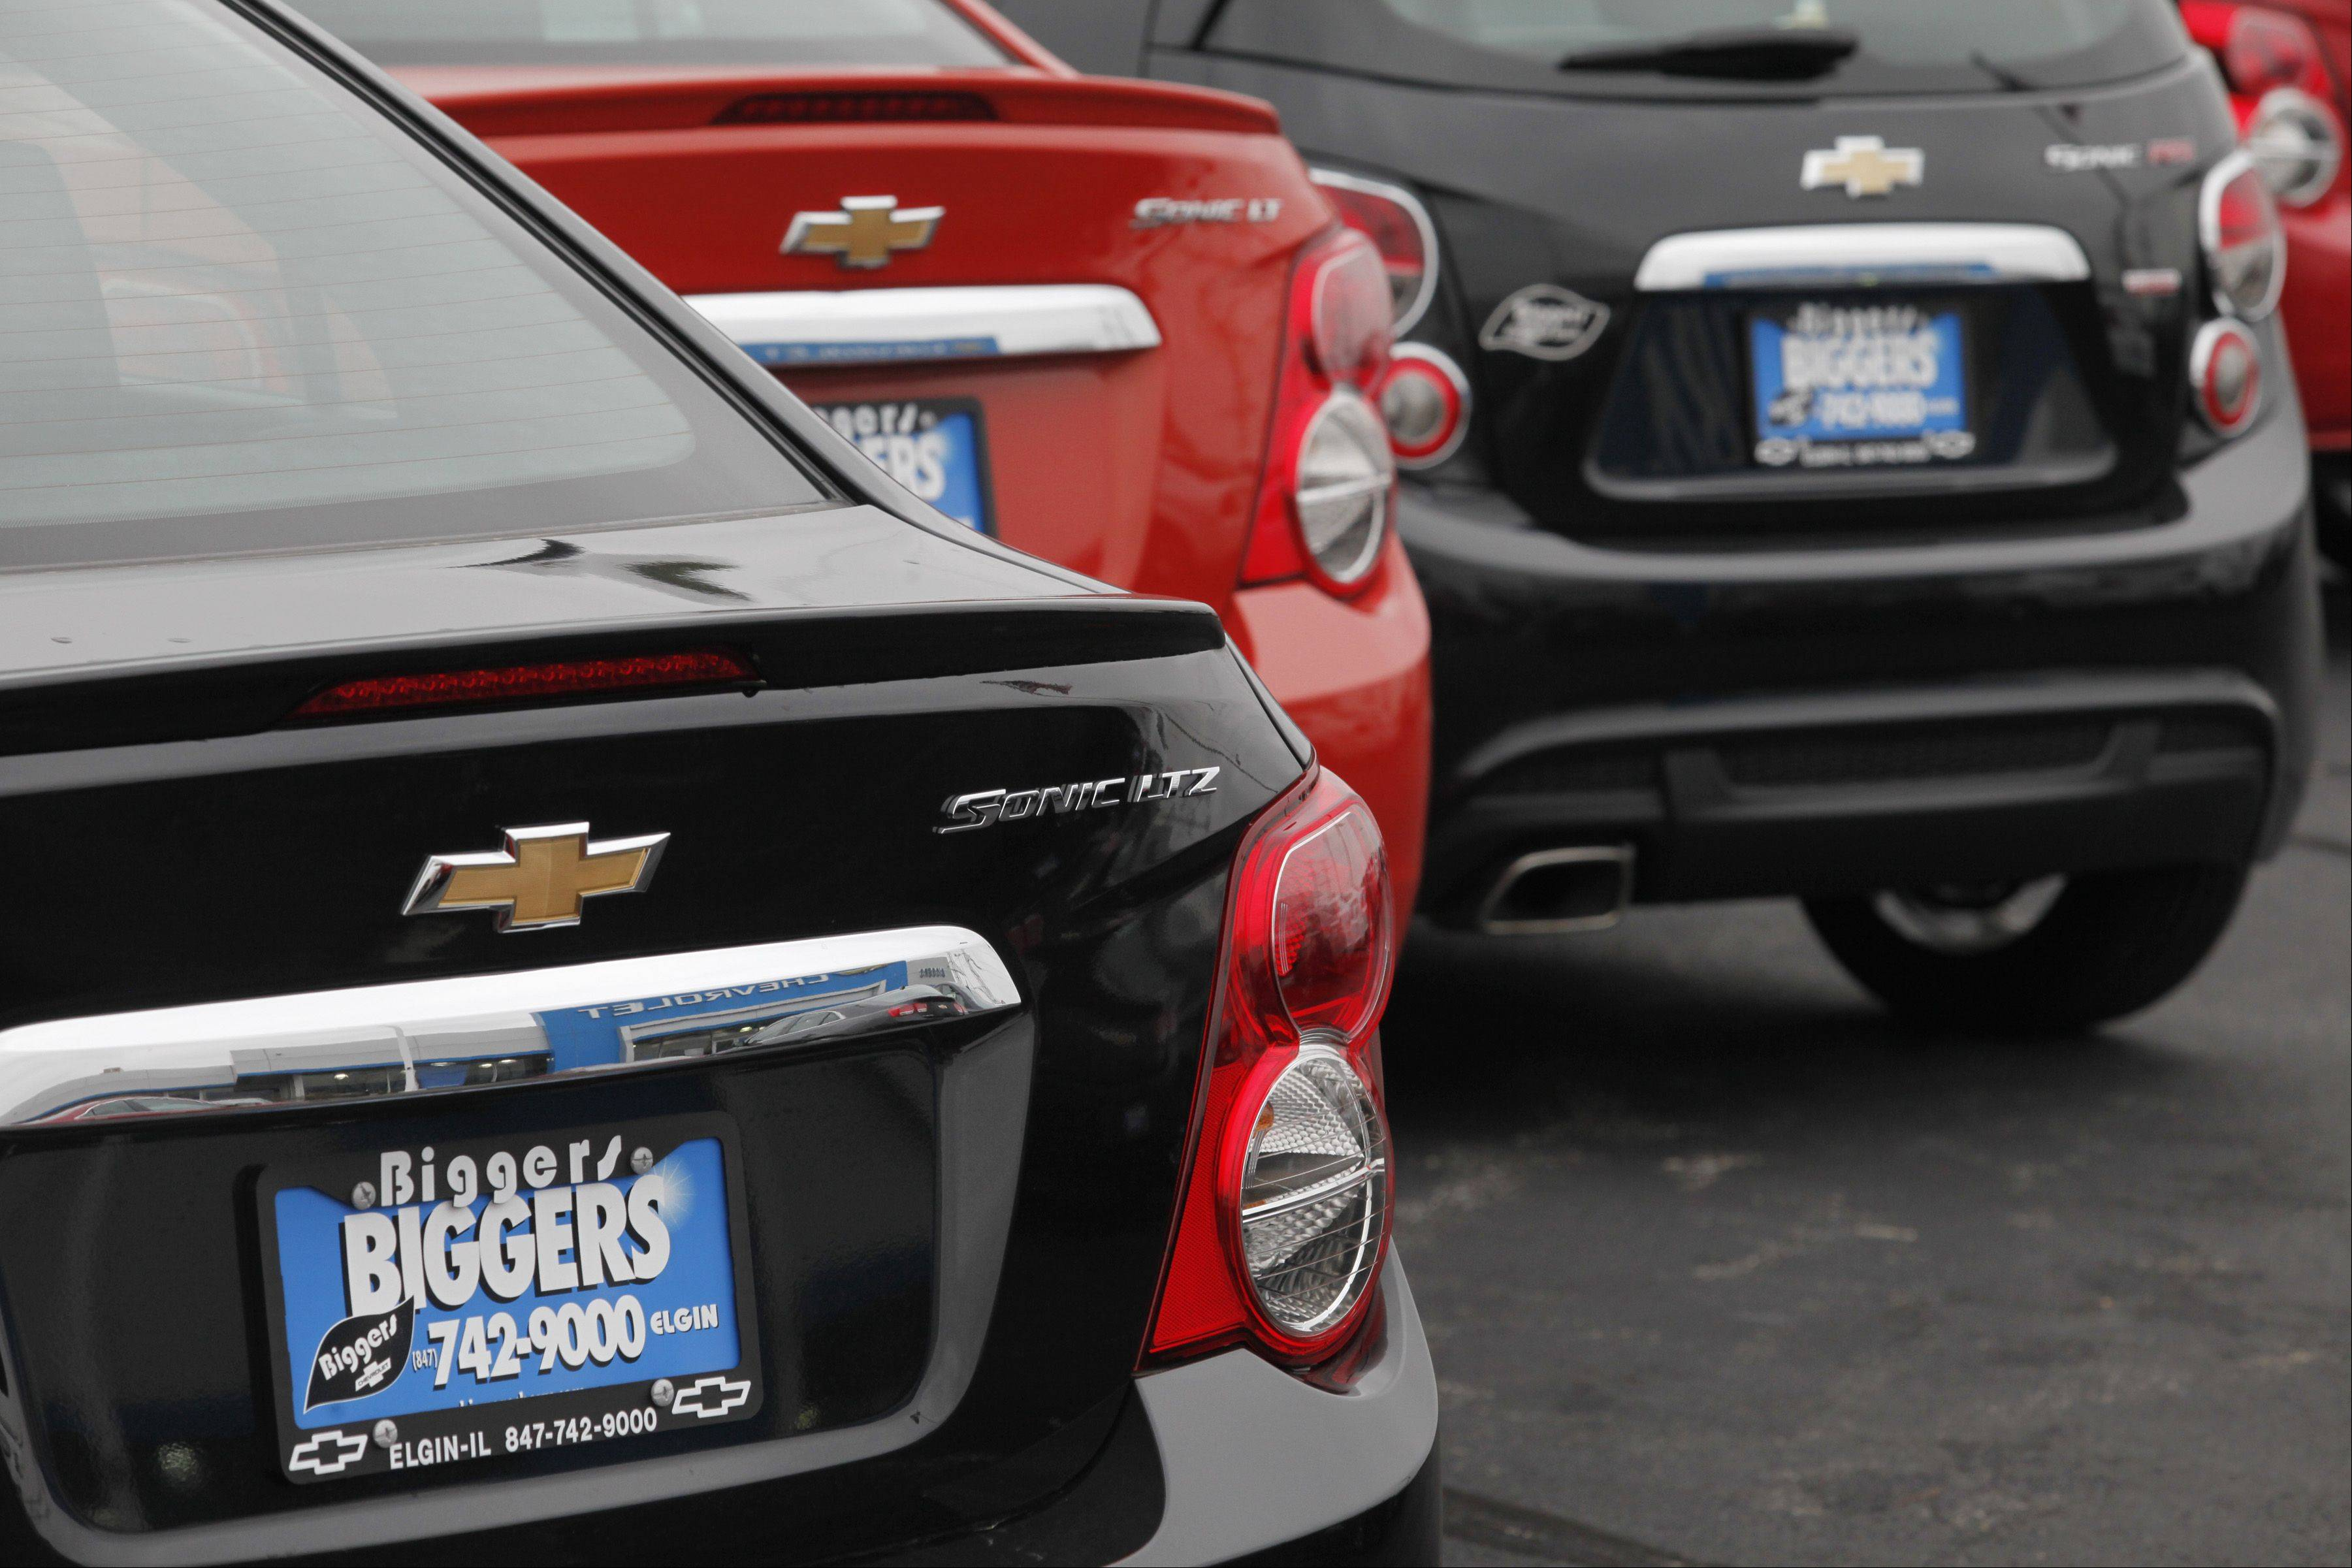 A row of Chevy Sonic models at Biggers Chevrolet in Elgin.